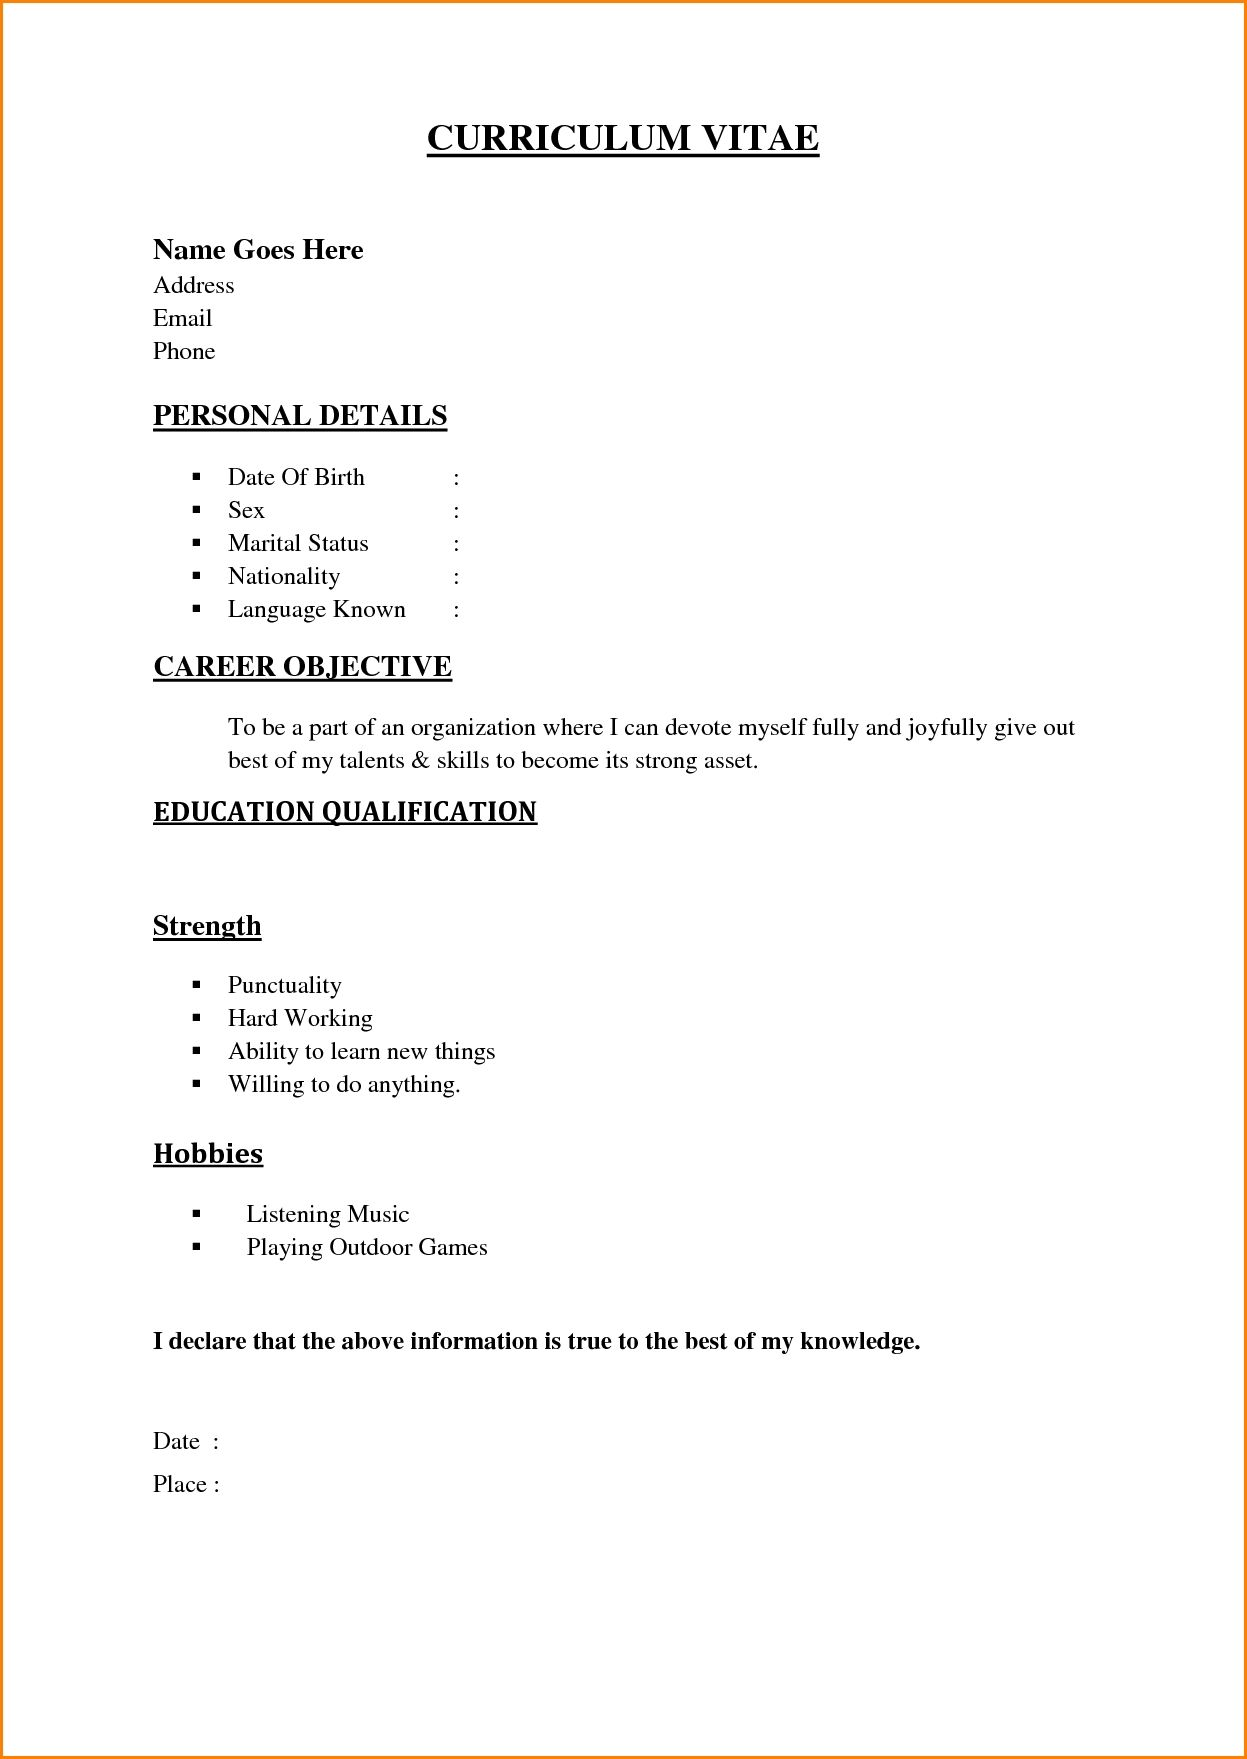 resume simple best and format samples alexa examples resumes example collage application template - Resume Pictures Examples